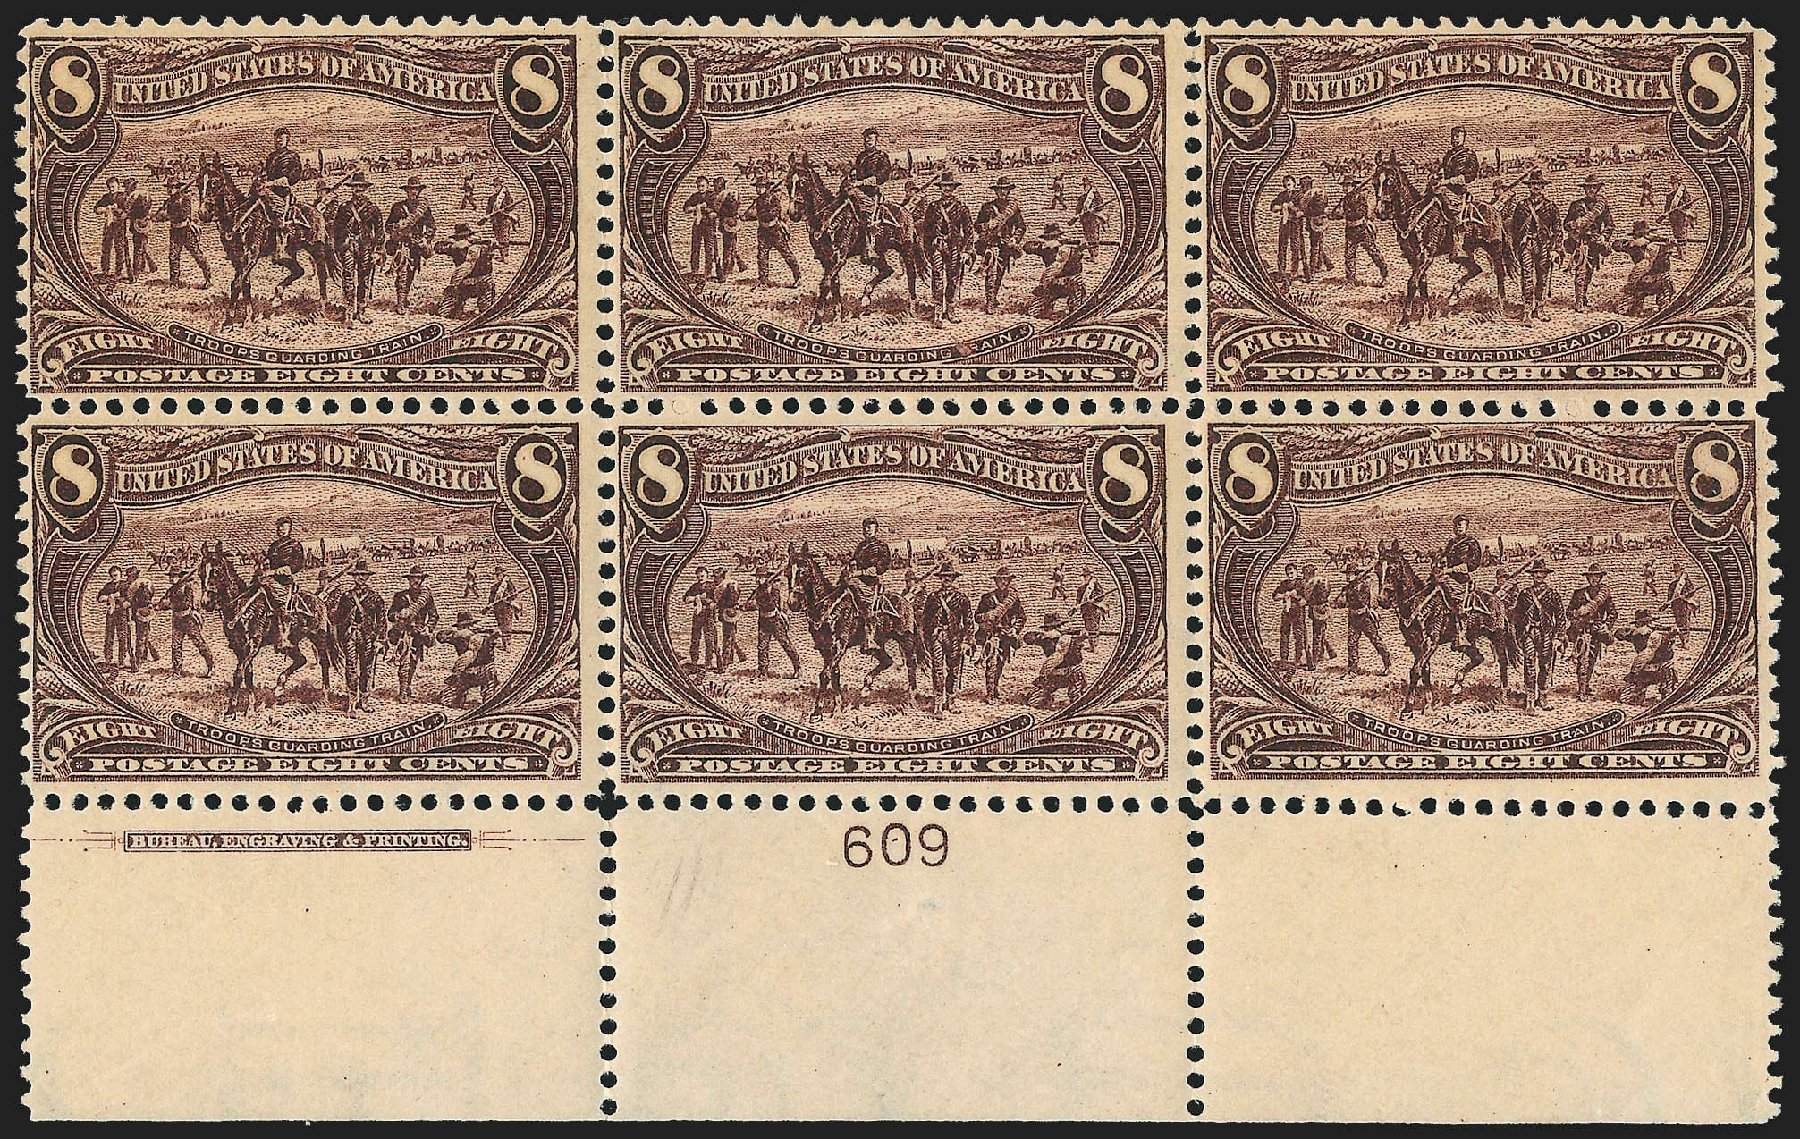 US Stamps Price Scott # 289 - 8c 1898 Trans Mississippi Exposition. Robert Siegel Auction Galleries, Jul 2015, Sale 1107, Lot 384